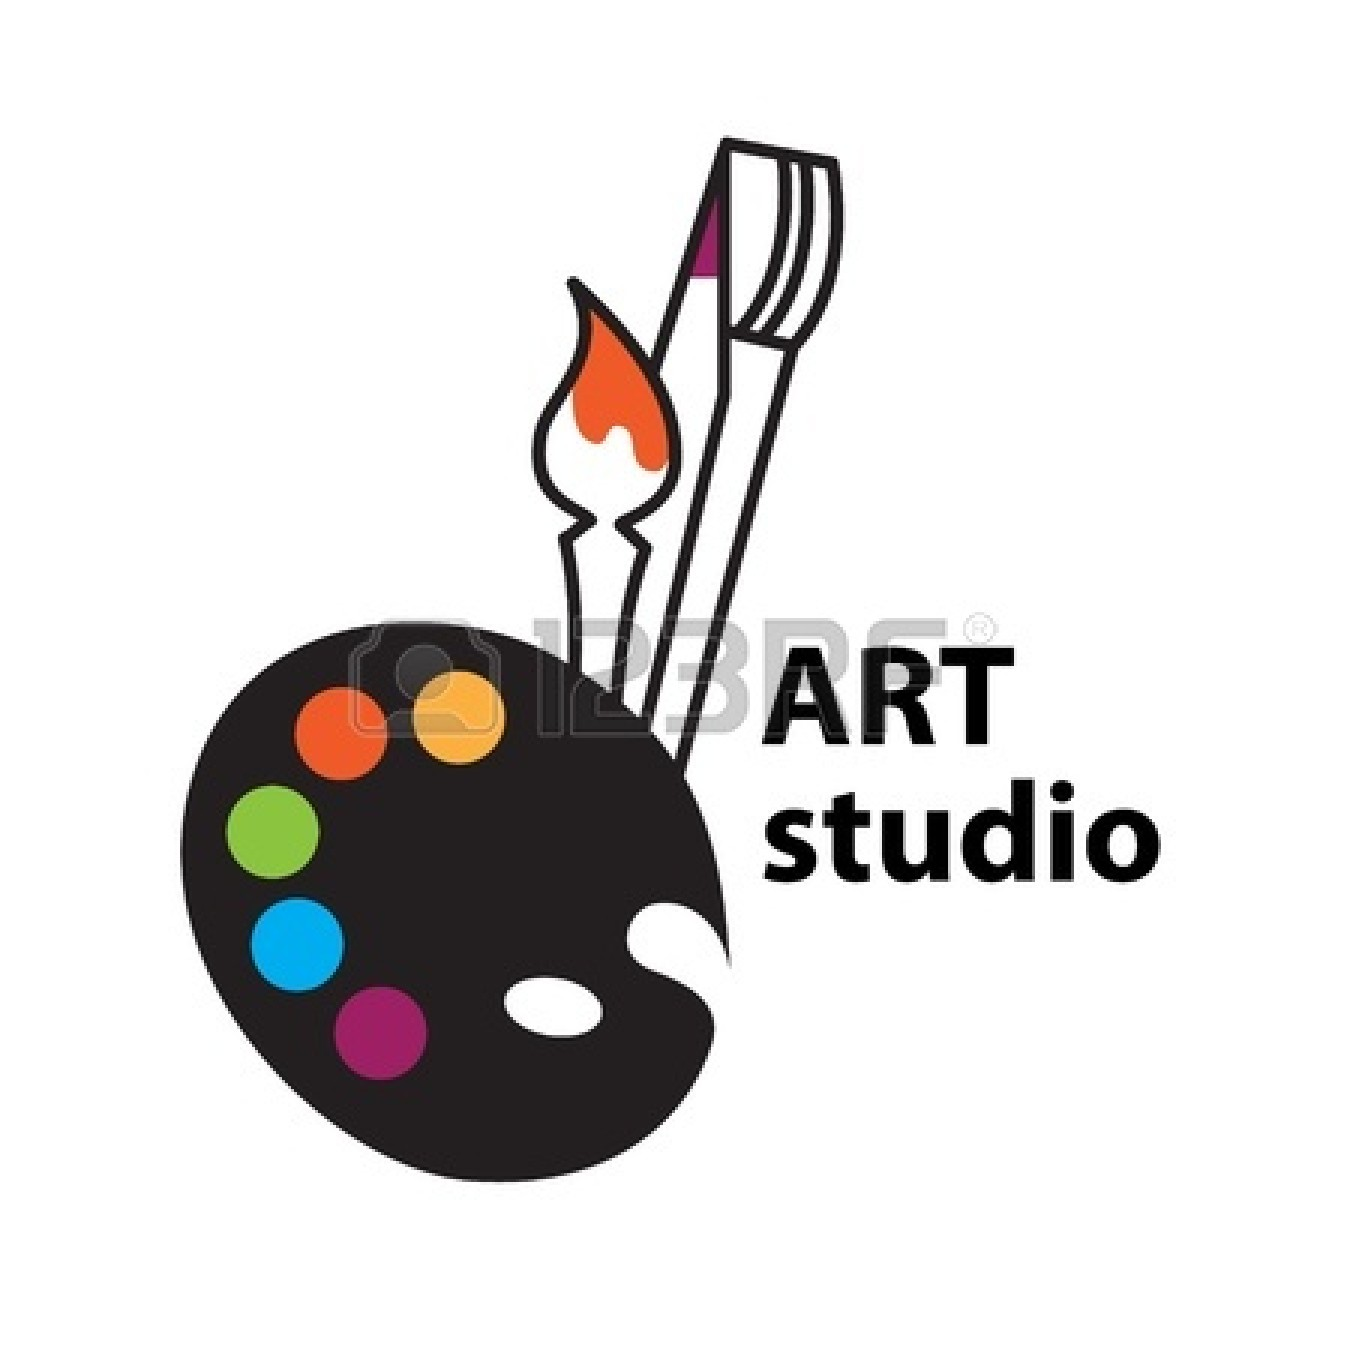 studio palette icon clip clipart sign illustration clipartpanda vector brush presentations websites reports powerpoint projects these